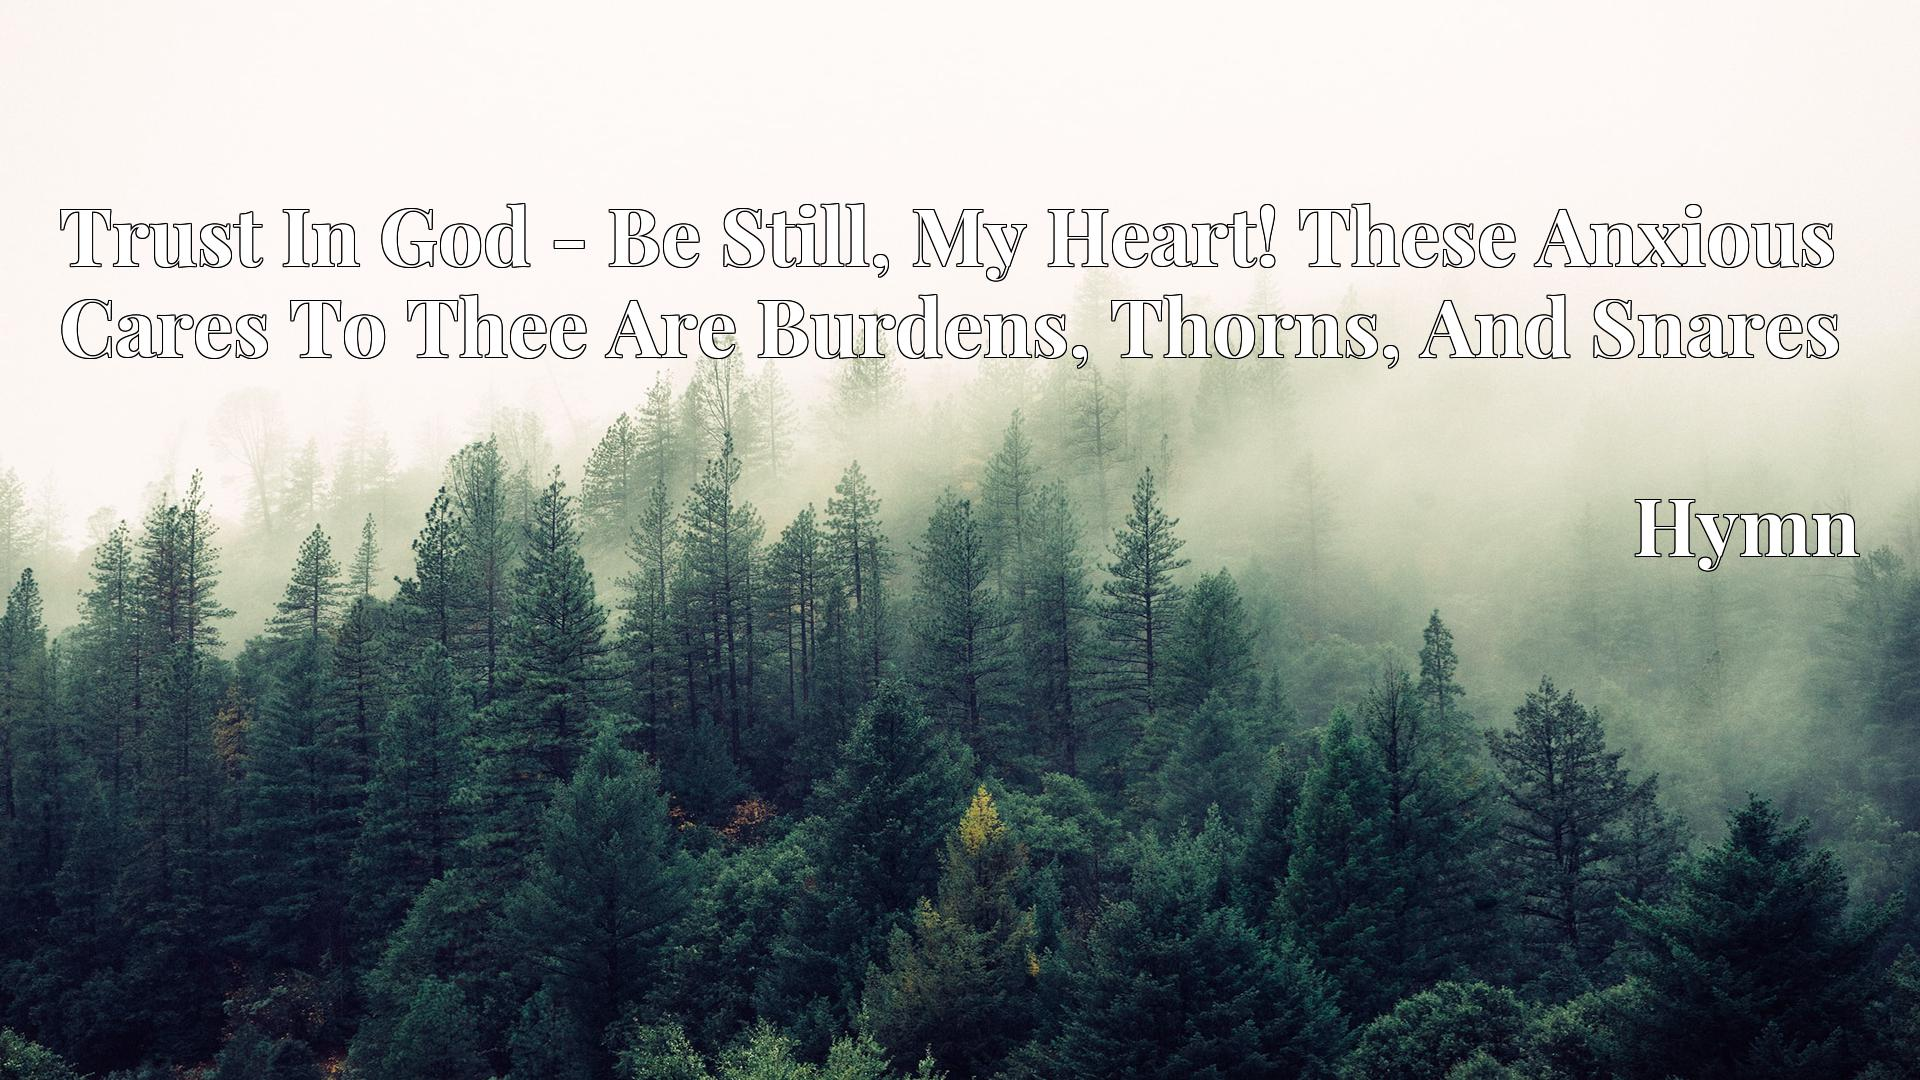 Trust In God - Be Still, My Heart! These Anxious Cares To Thee Are Burdens, Thorns, And Snares - Hymn